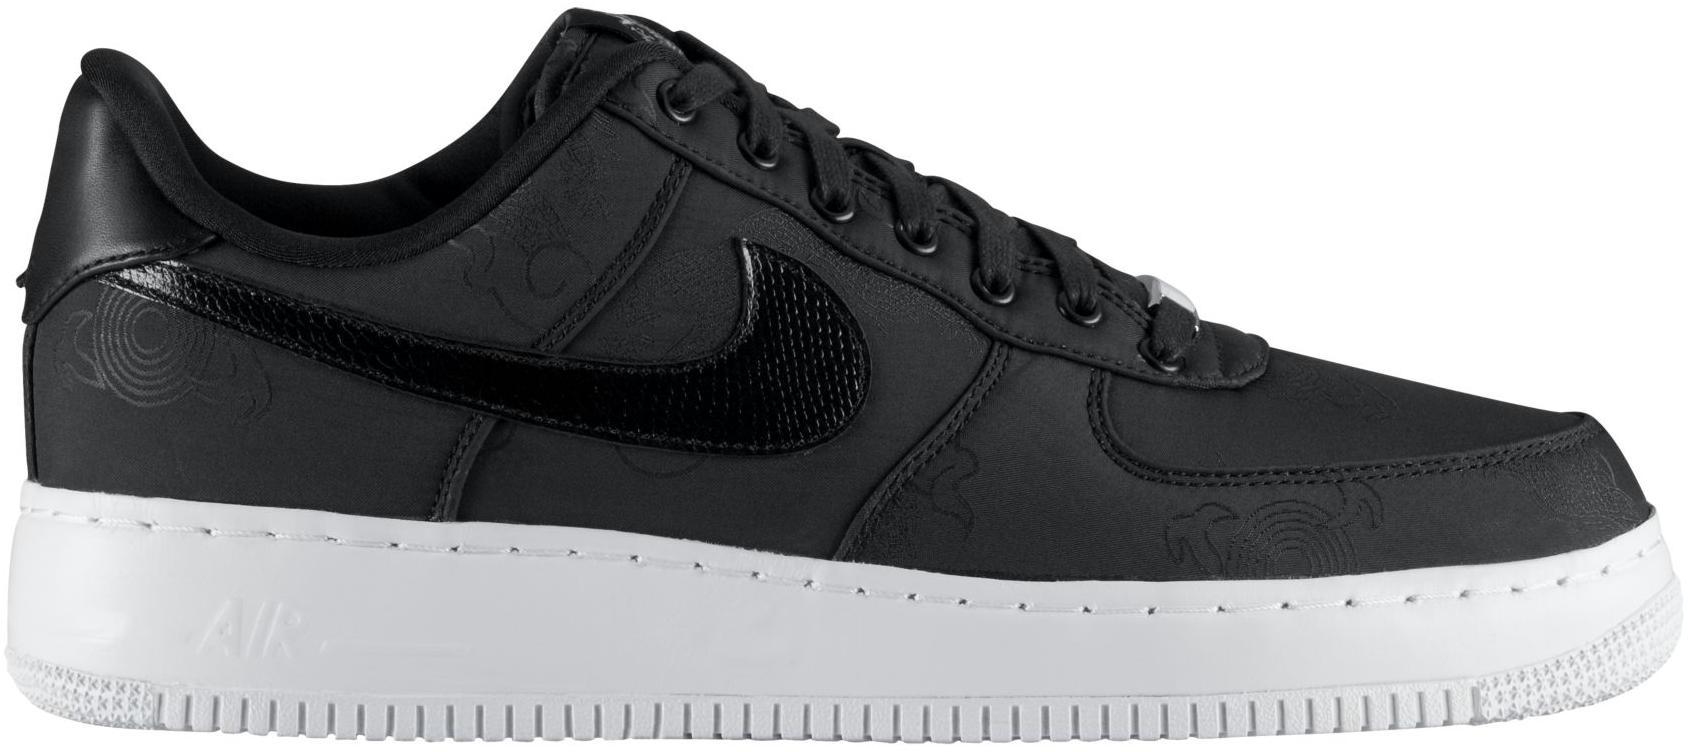 Nike Air Force 1 Low Year of the Dragon